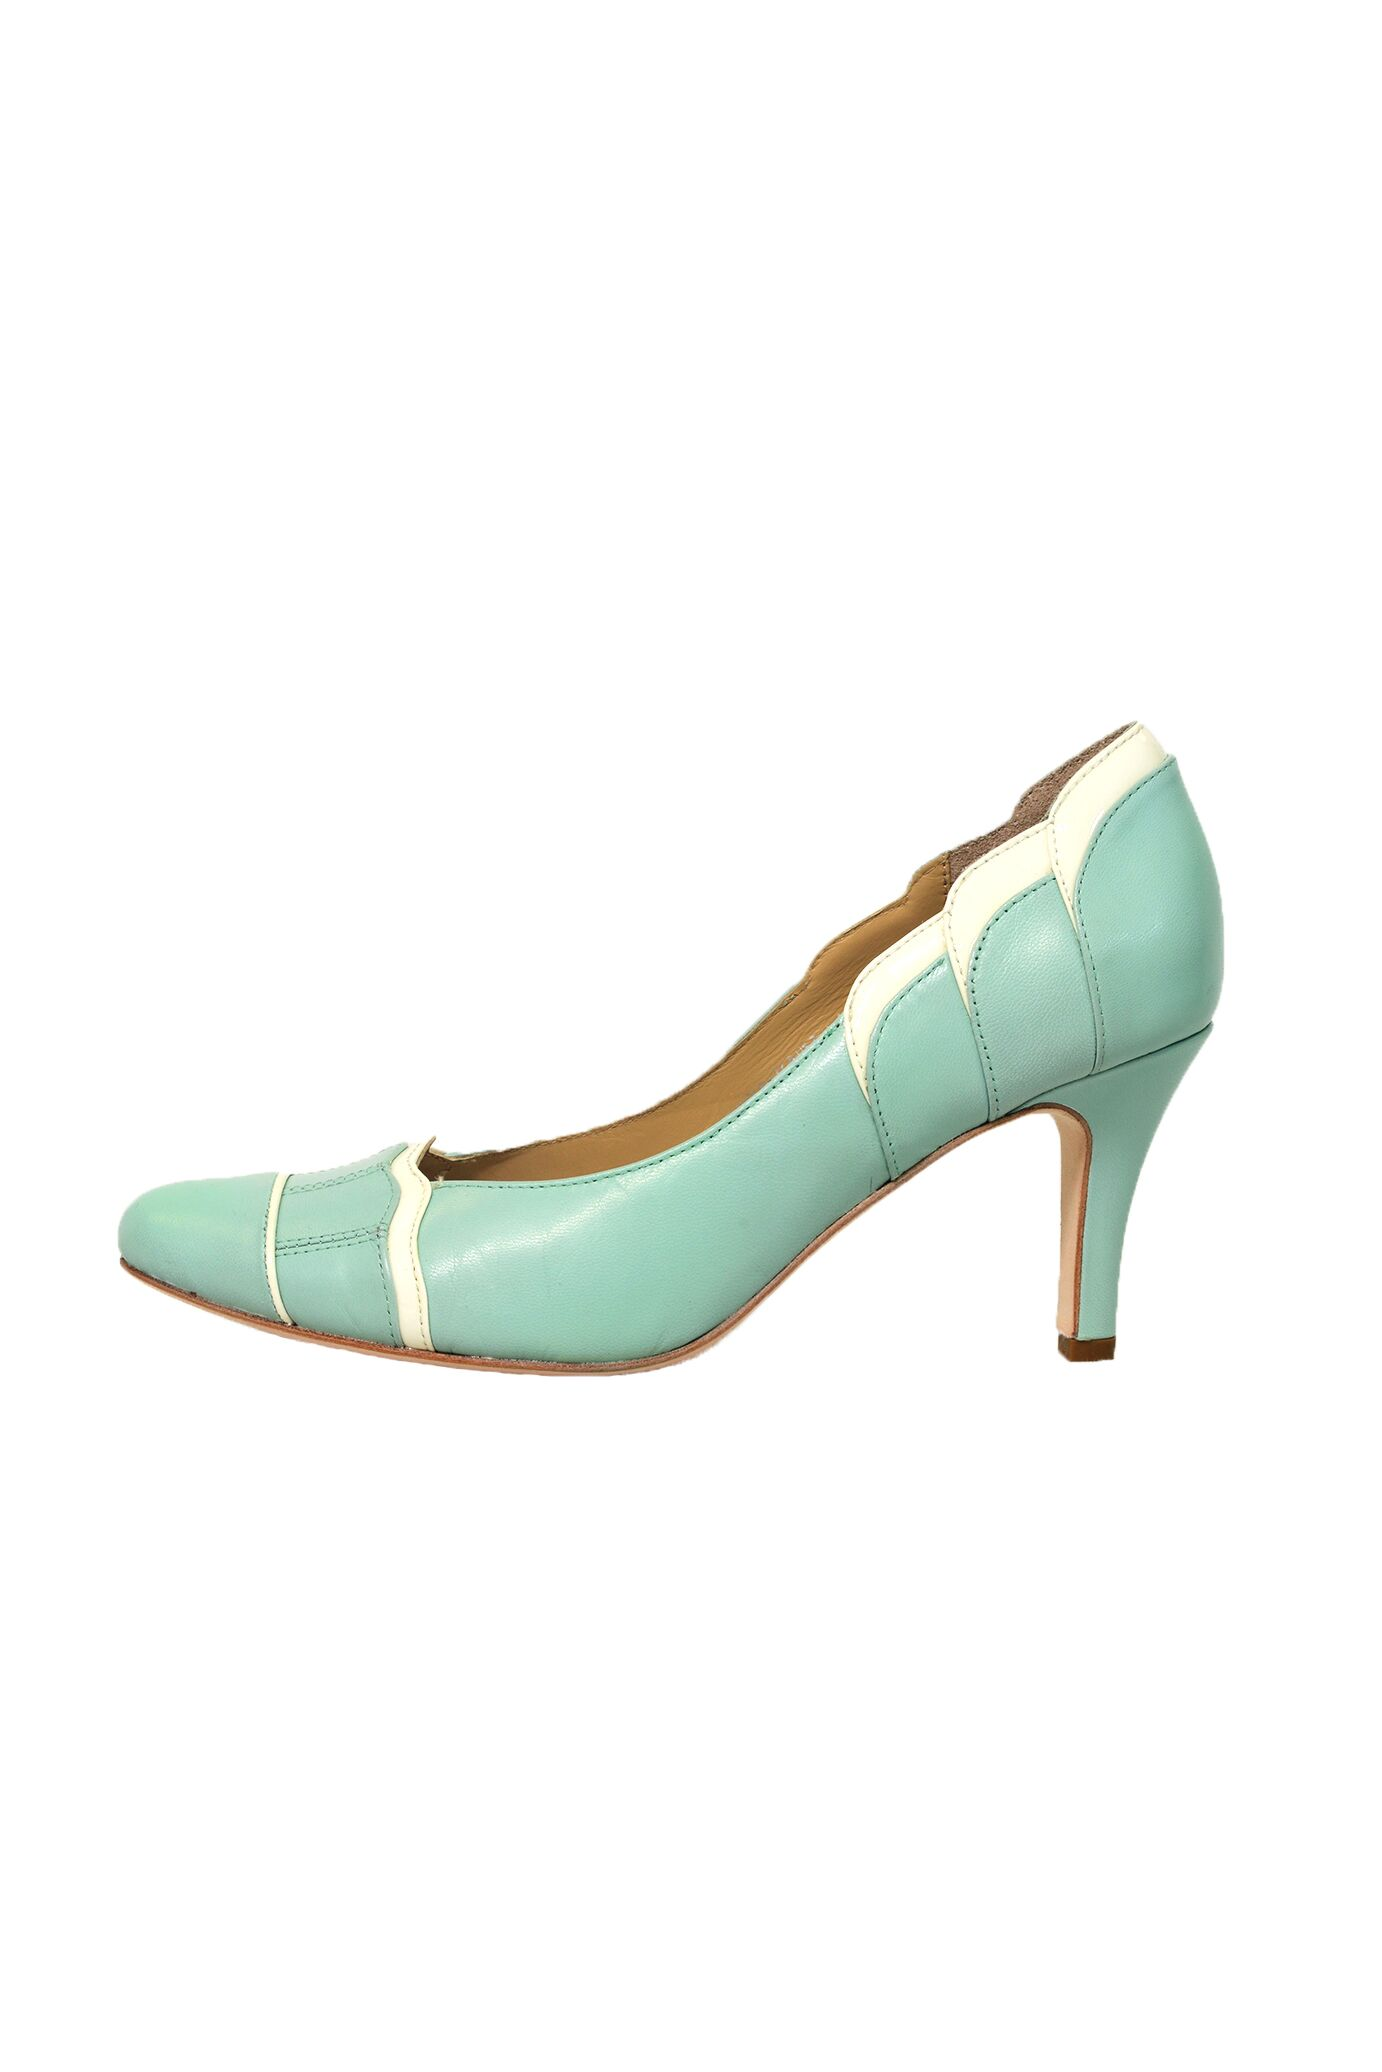 Hey Lady Shoes At Tiffanys Wedding Shoes - The Knot